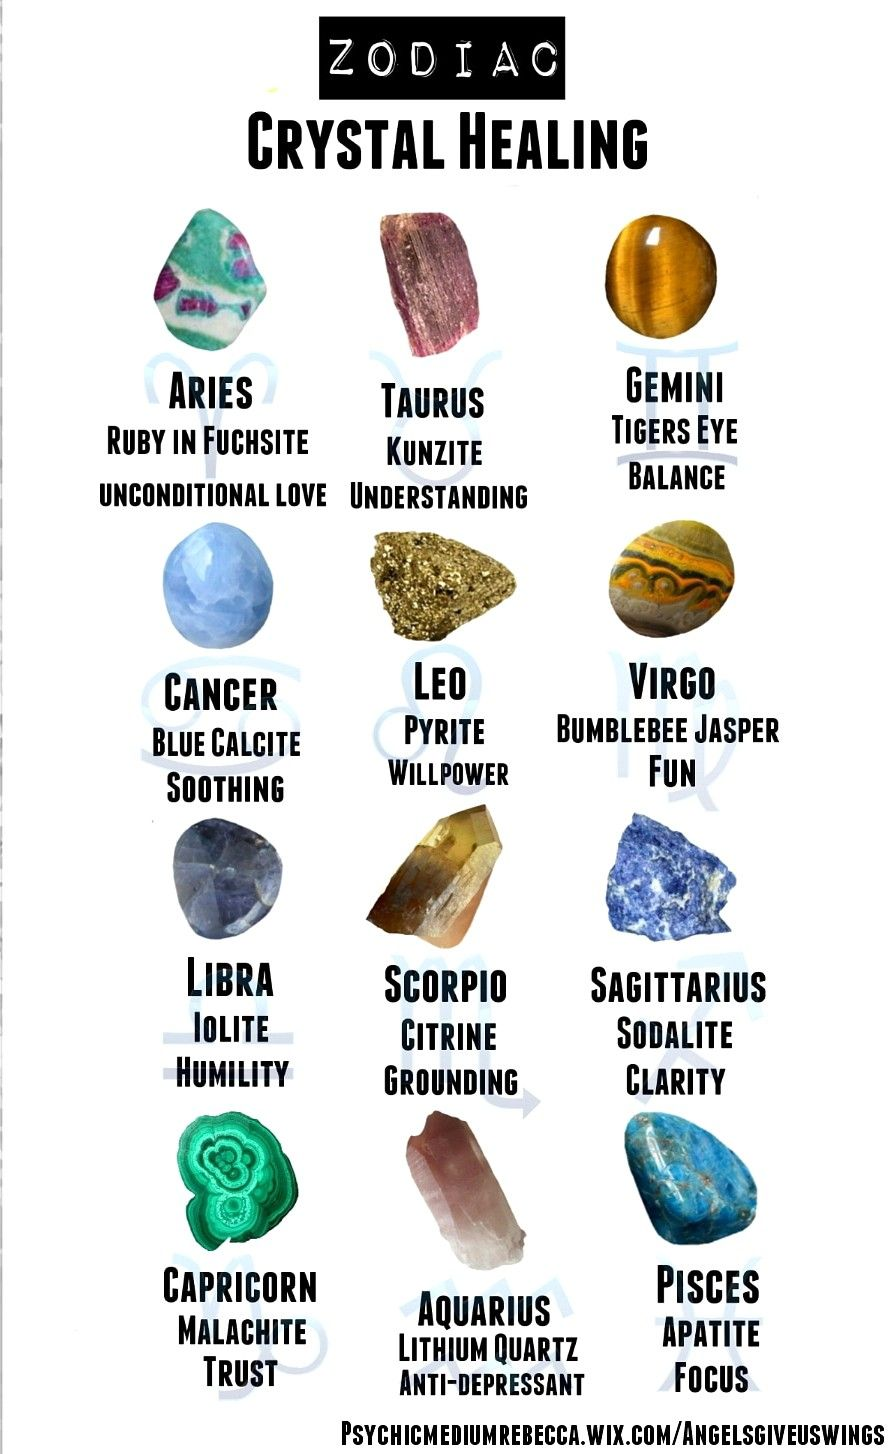 What are the most suitable stones for Capricorn